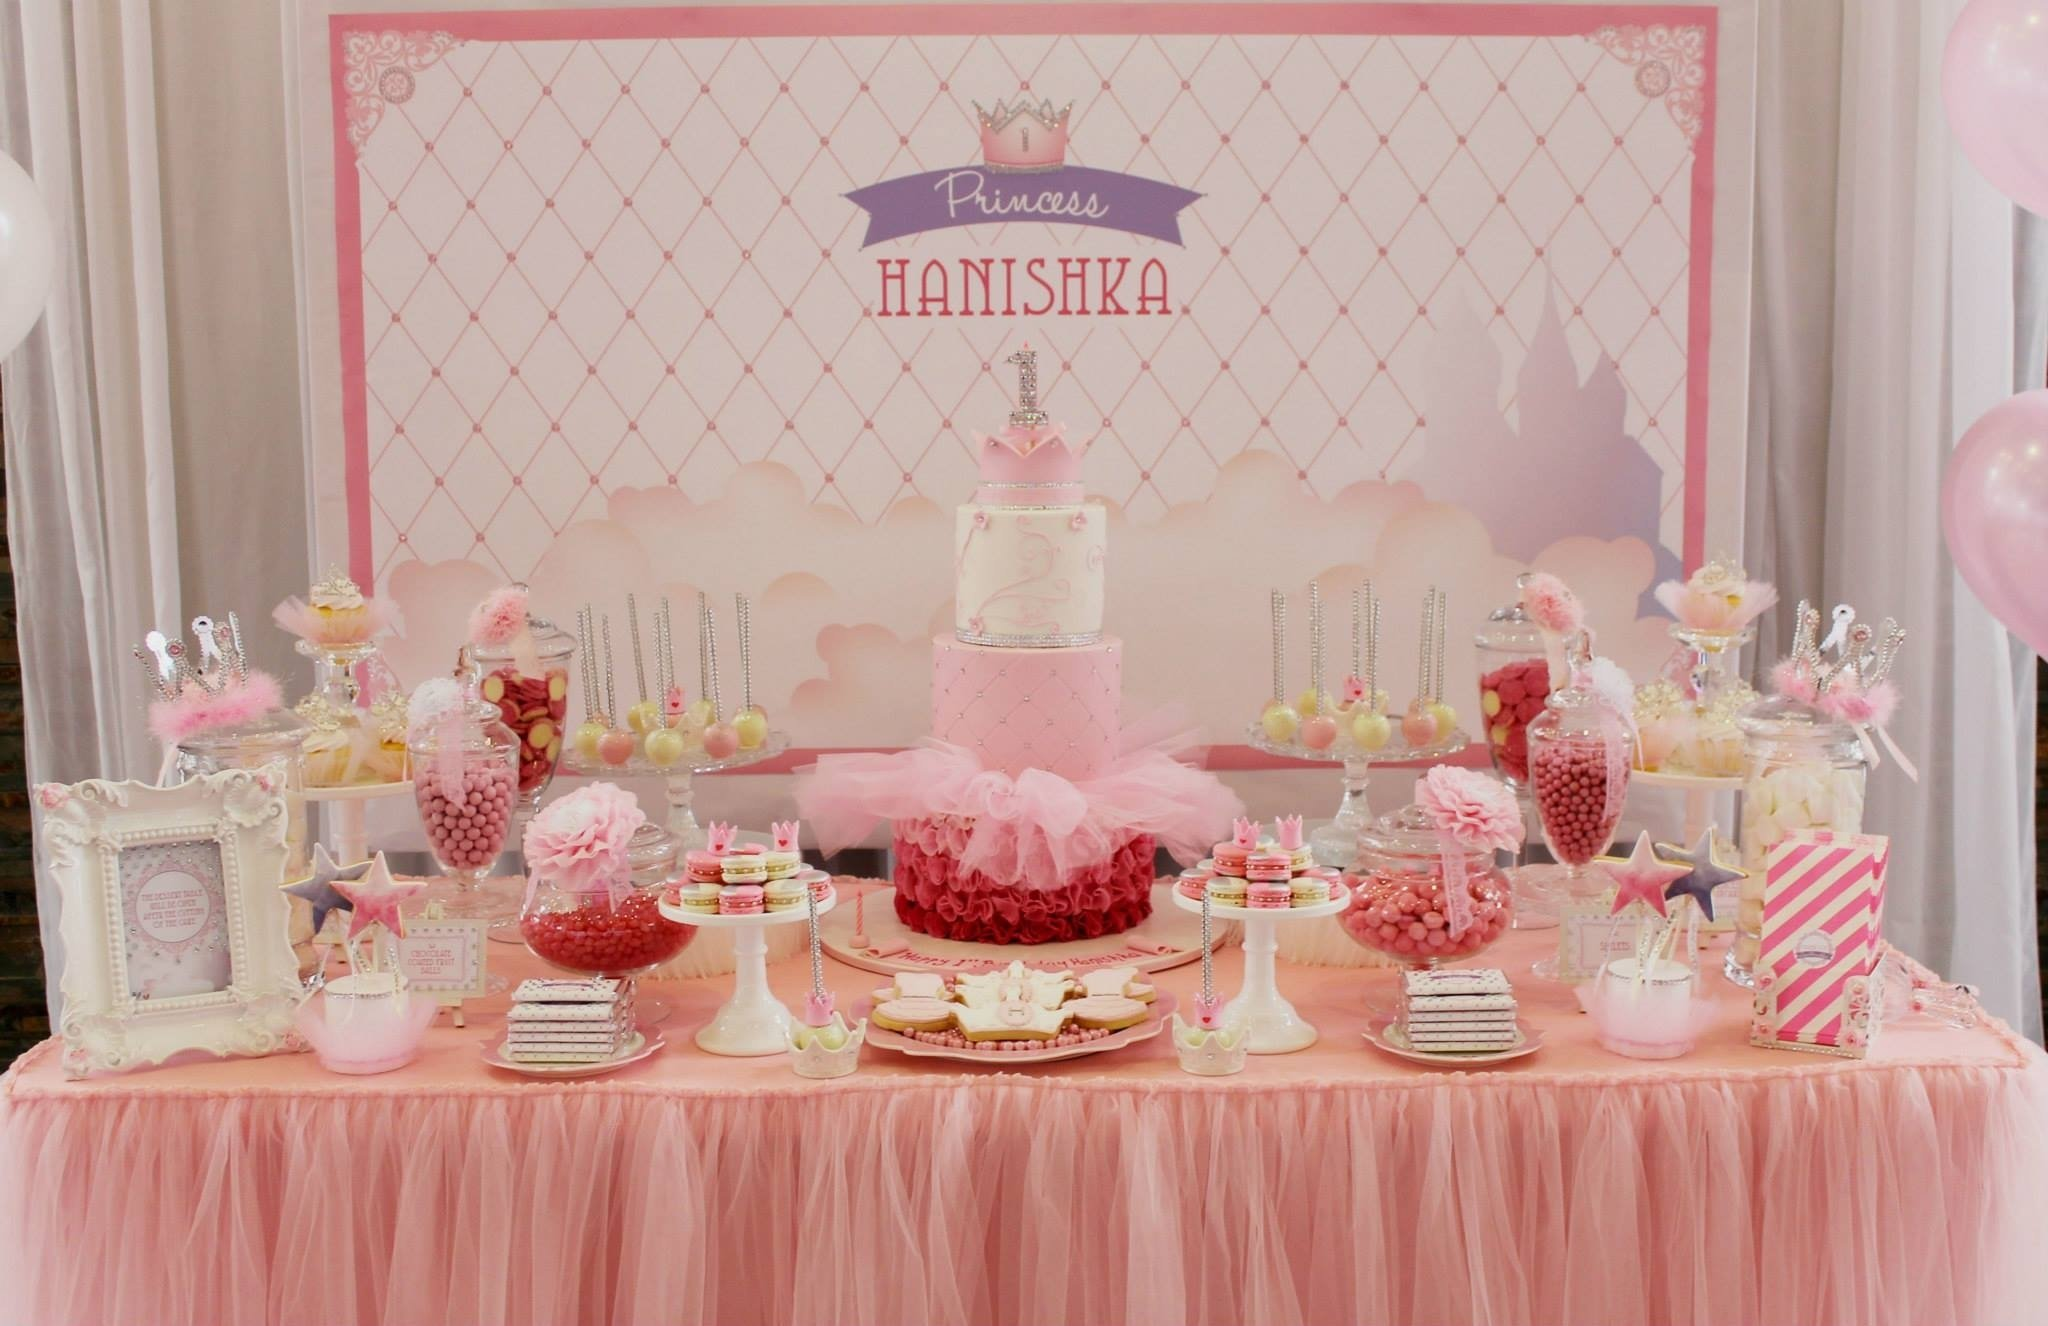 10 Attractive 1St Birthday Princess Party Ideas bling princess first birthday party birthday party ideas themes 1 2021